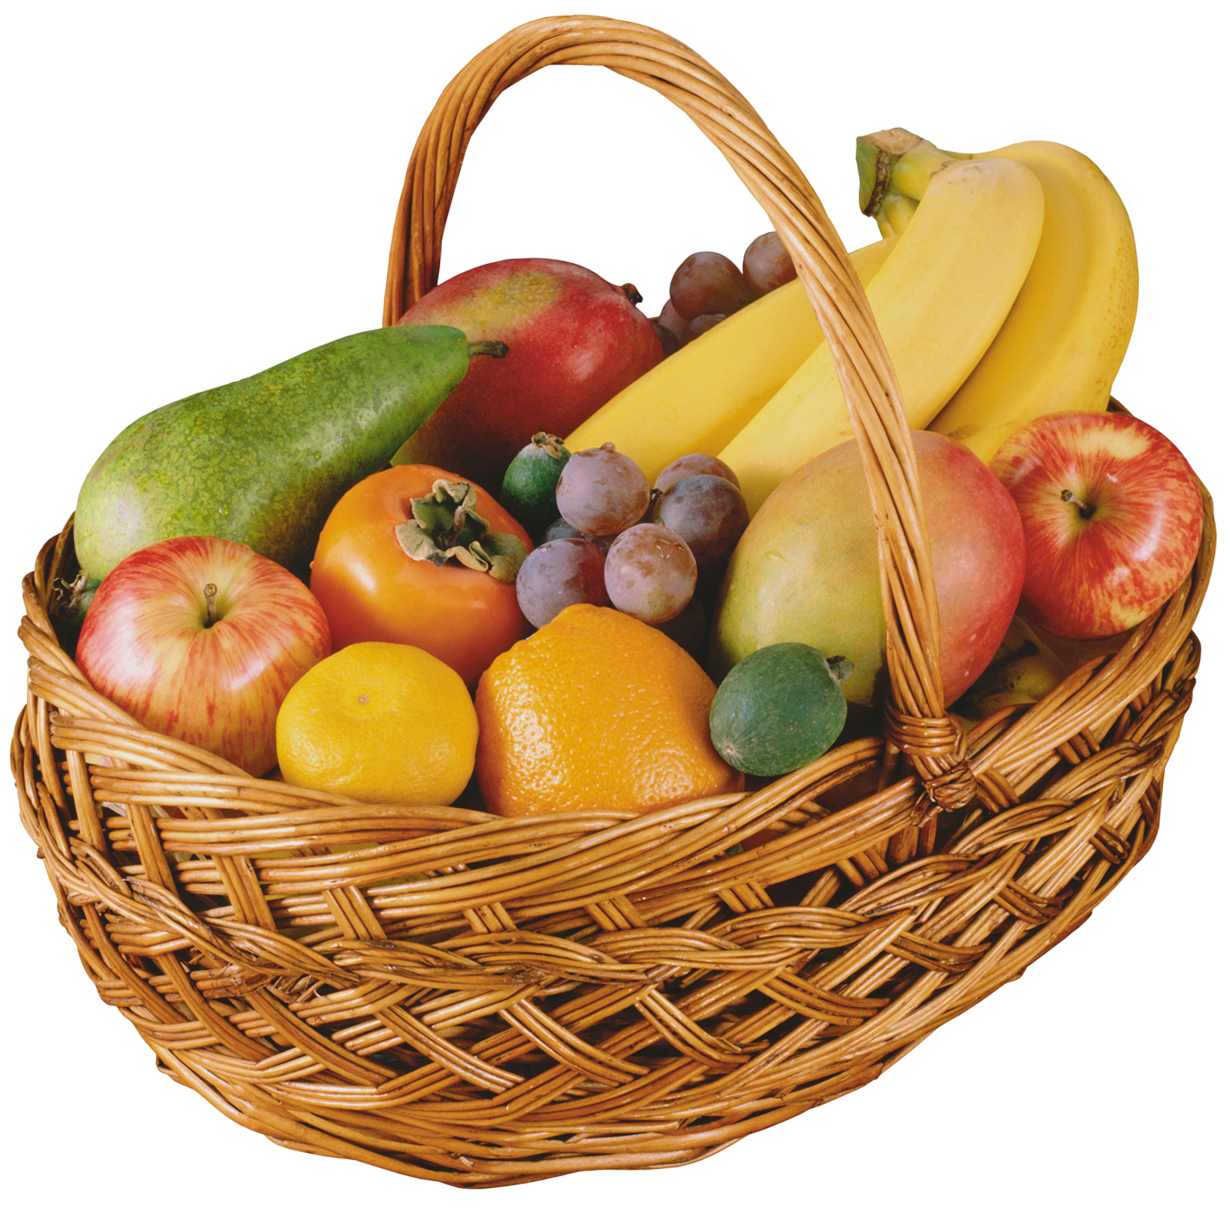 Basket png best web. Bucket clipart fruit